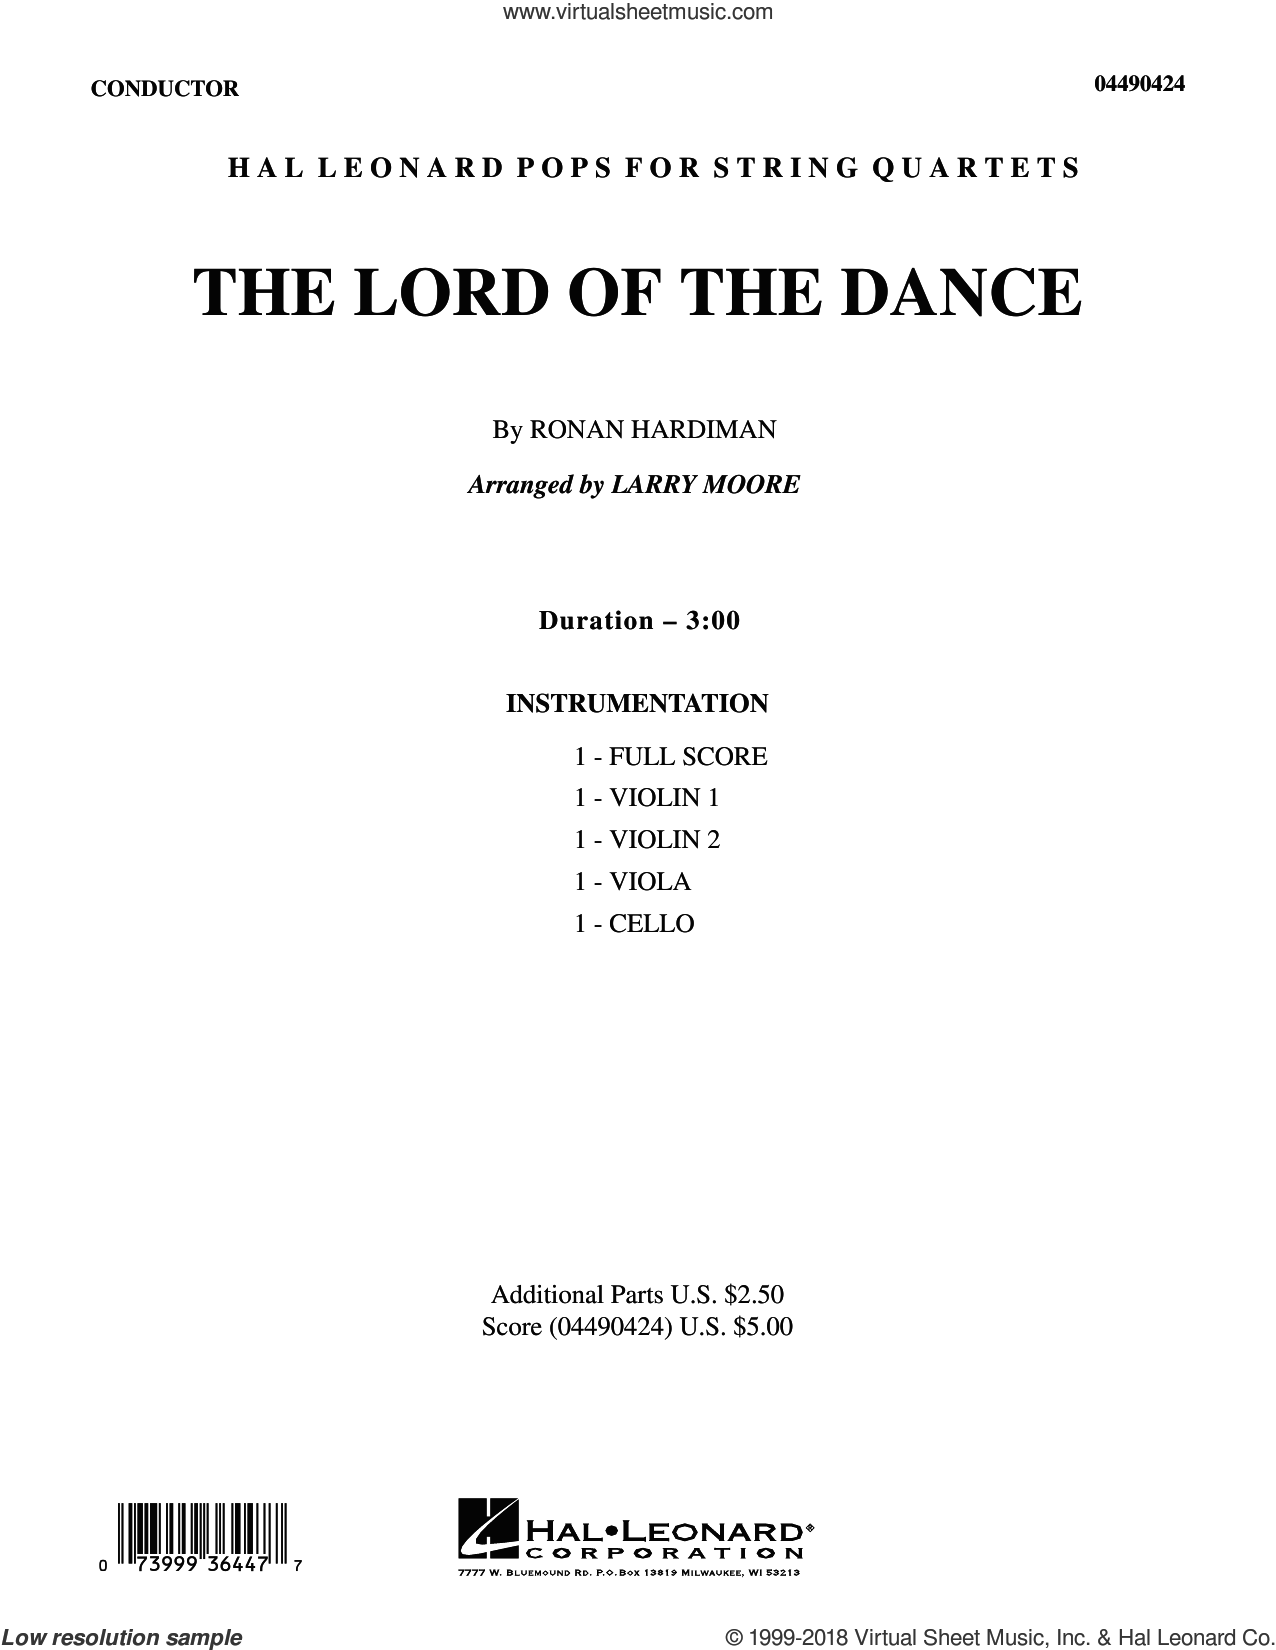 The Lord of the Dance (COMPLETE) sheet music for string quartet (Strings) by Ronan Hardiman, intermediate orchestra